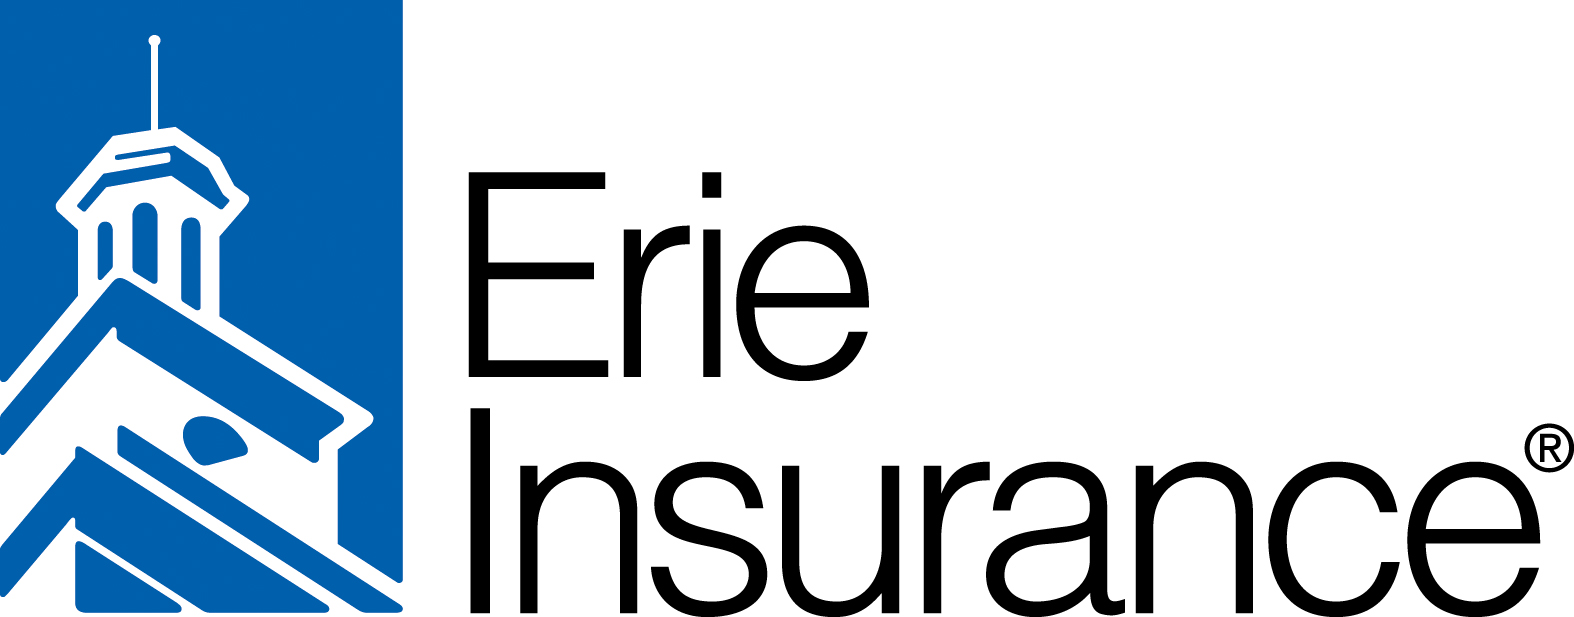 Cheap car insurance quotes from Erie